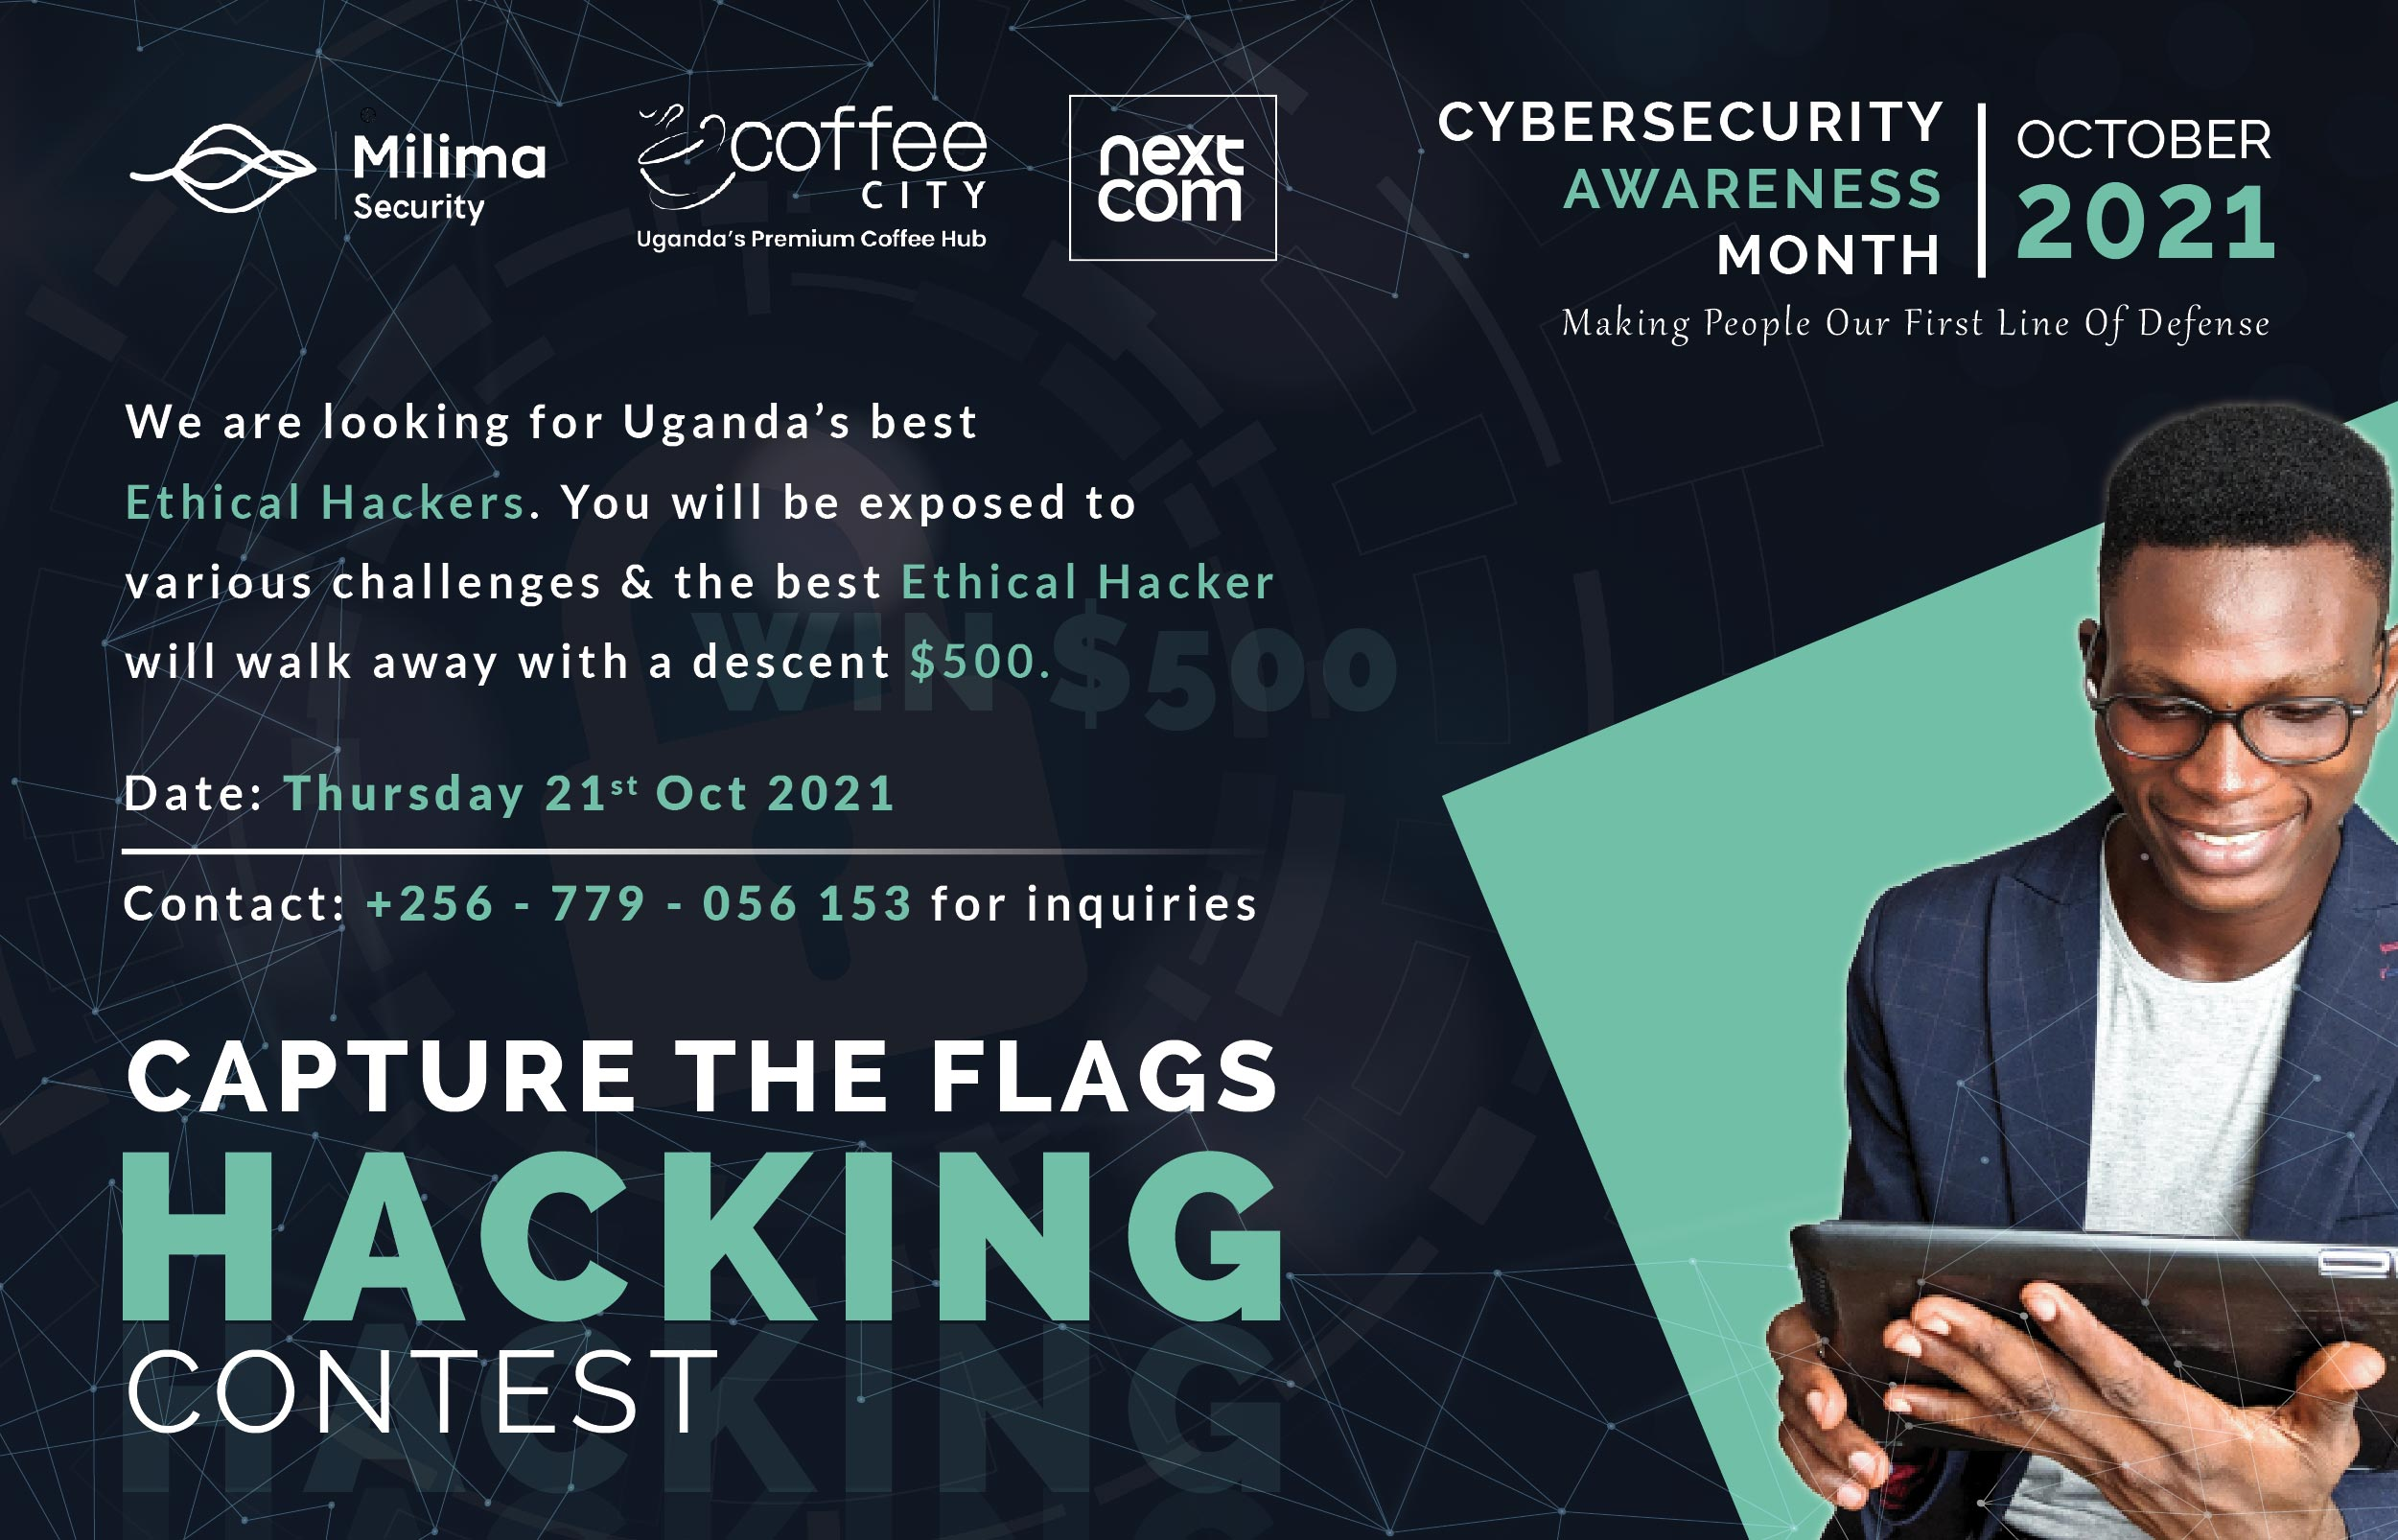 Milima Security - Hacking Contest